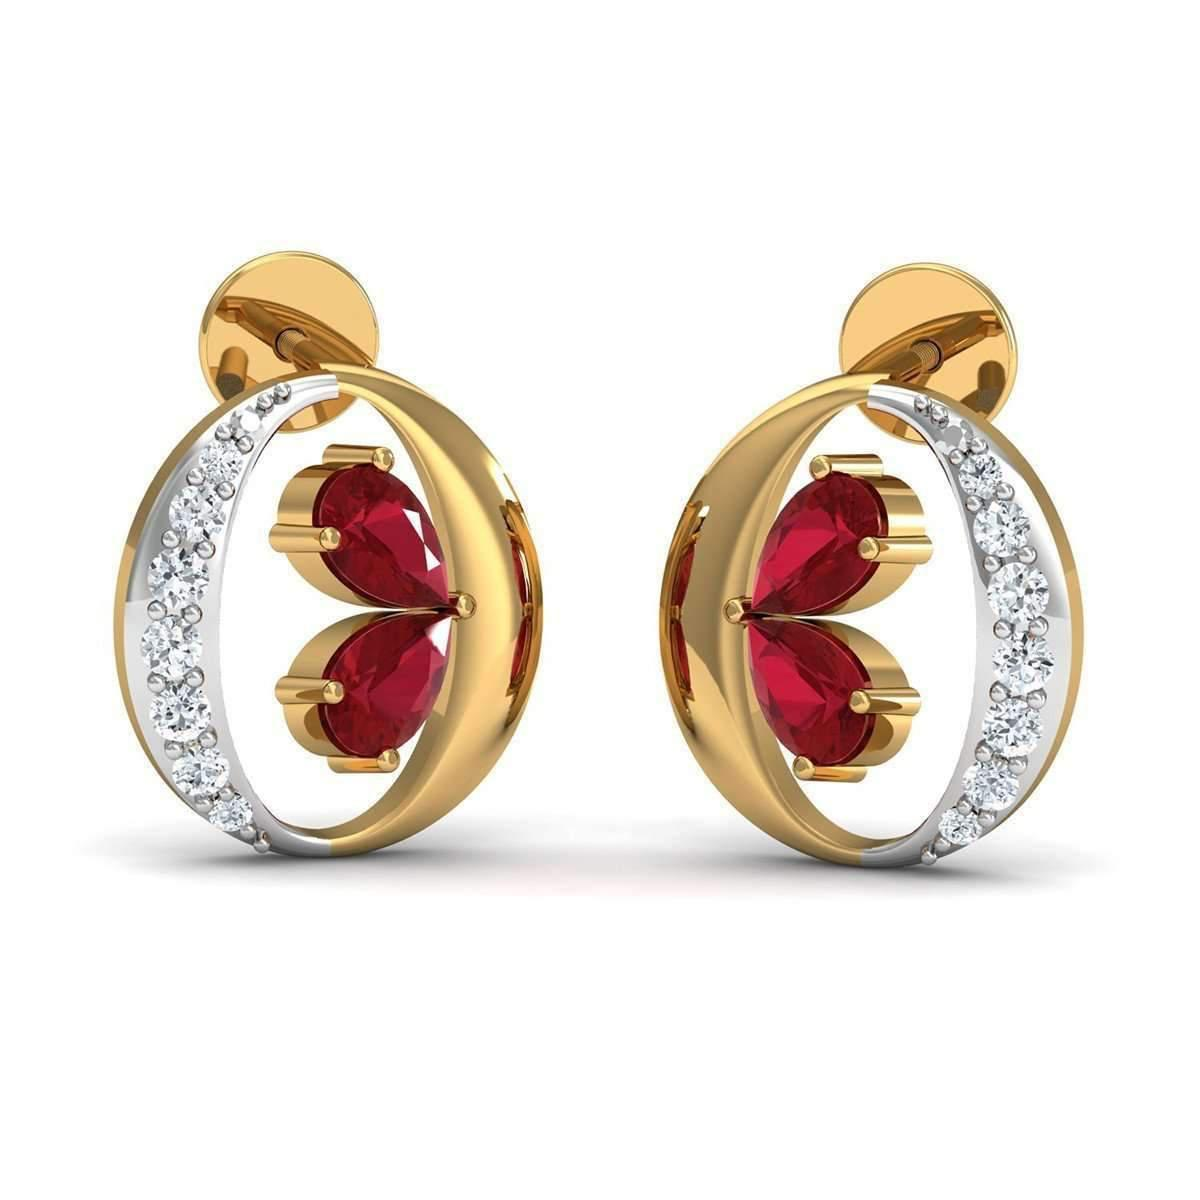 Diamoire Jewels Nature Inspired 14kt Yellow Gold and Pear Shaped Ruby Earrings with Premium Diamonds ZSAlYpQIea